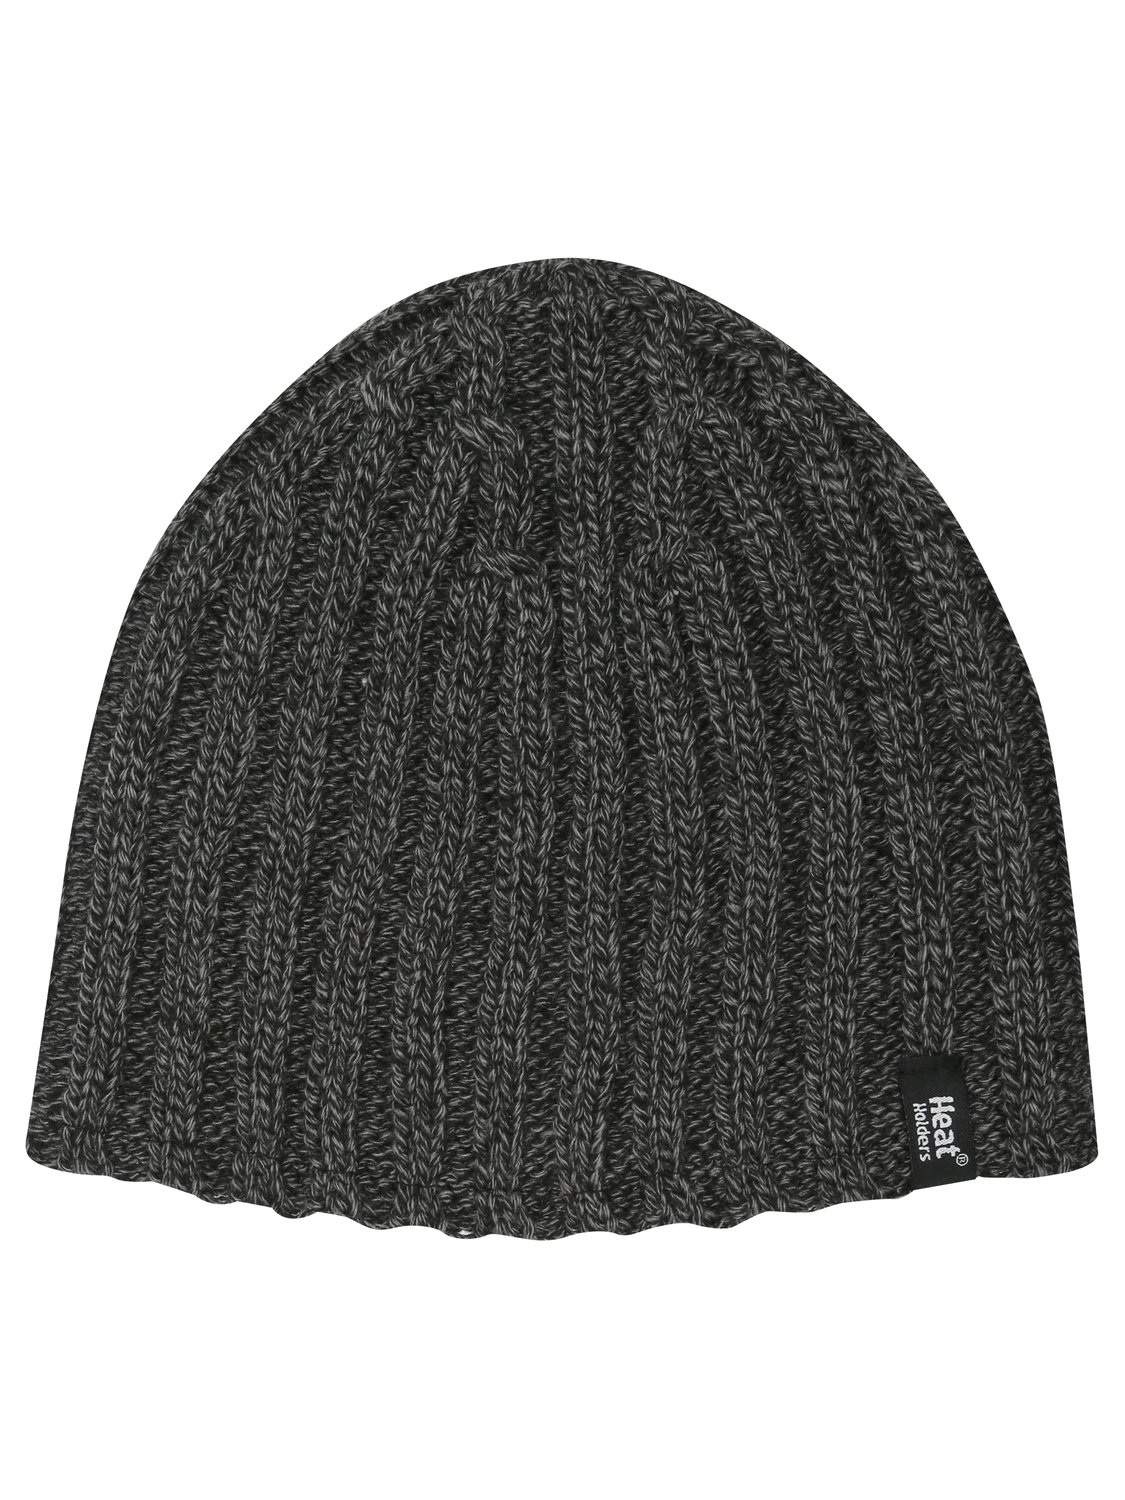 Heat Holders twist knit winter insulated thermal beanie hat   Charcoal